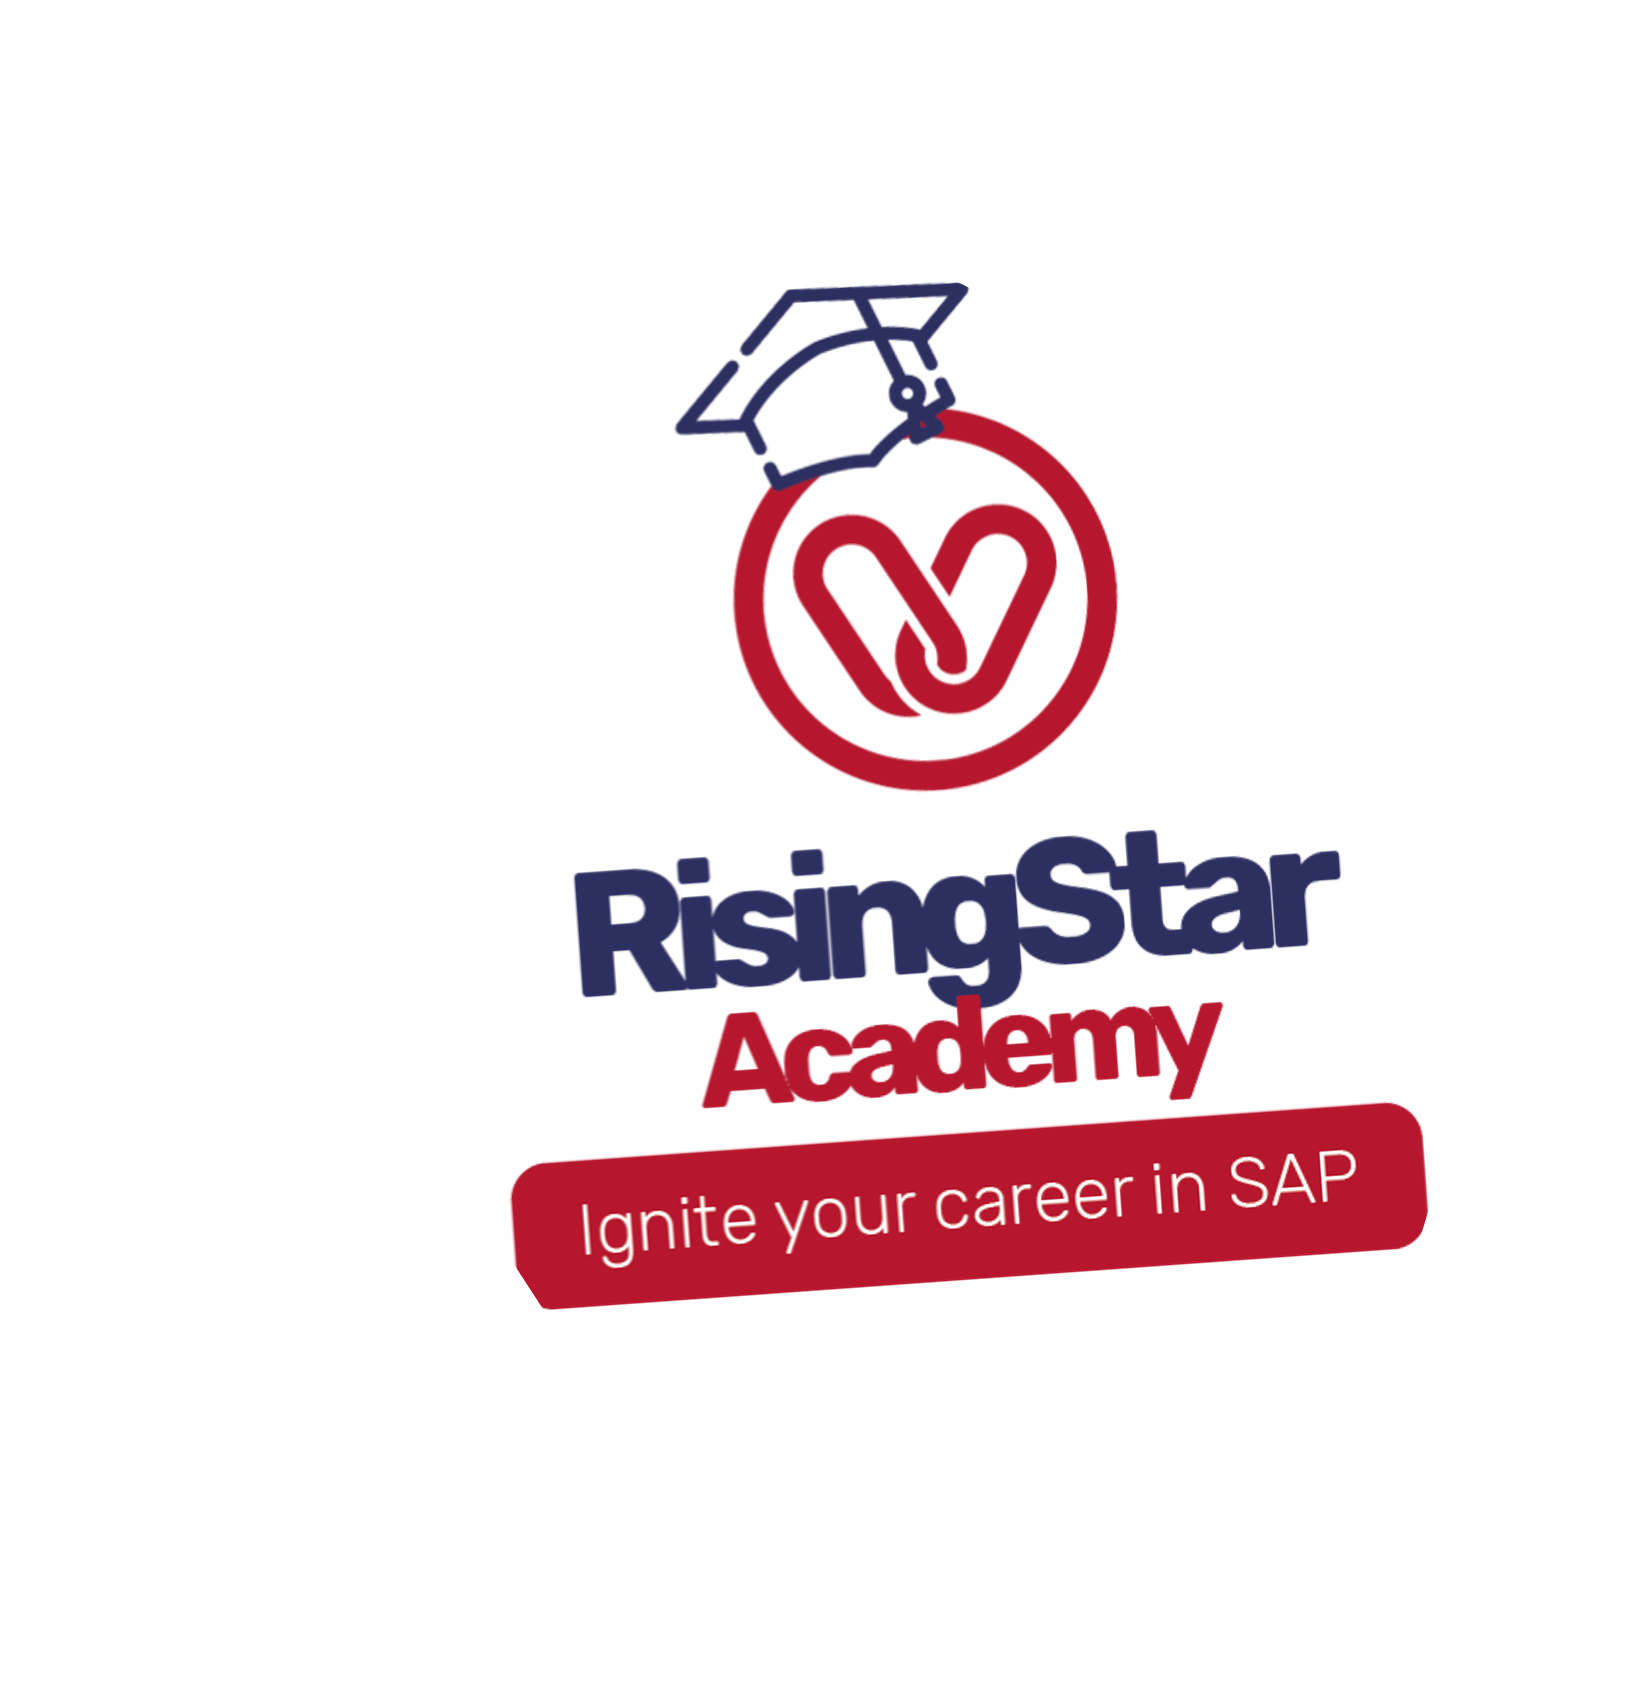 TheValueChain kicks off the Rising Star Academy edition 2021!